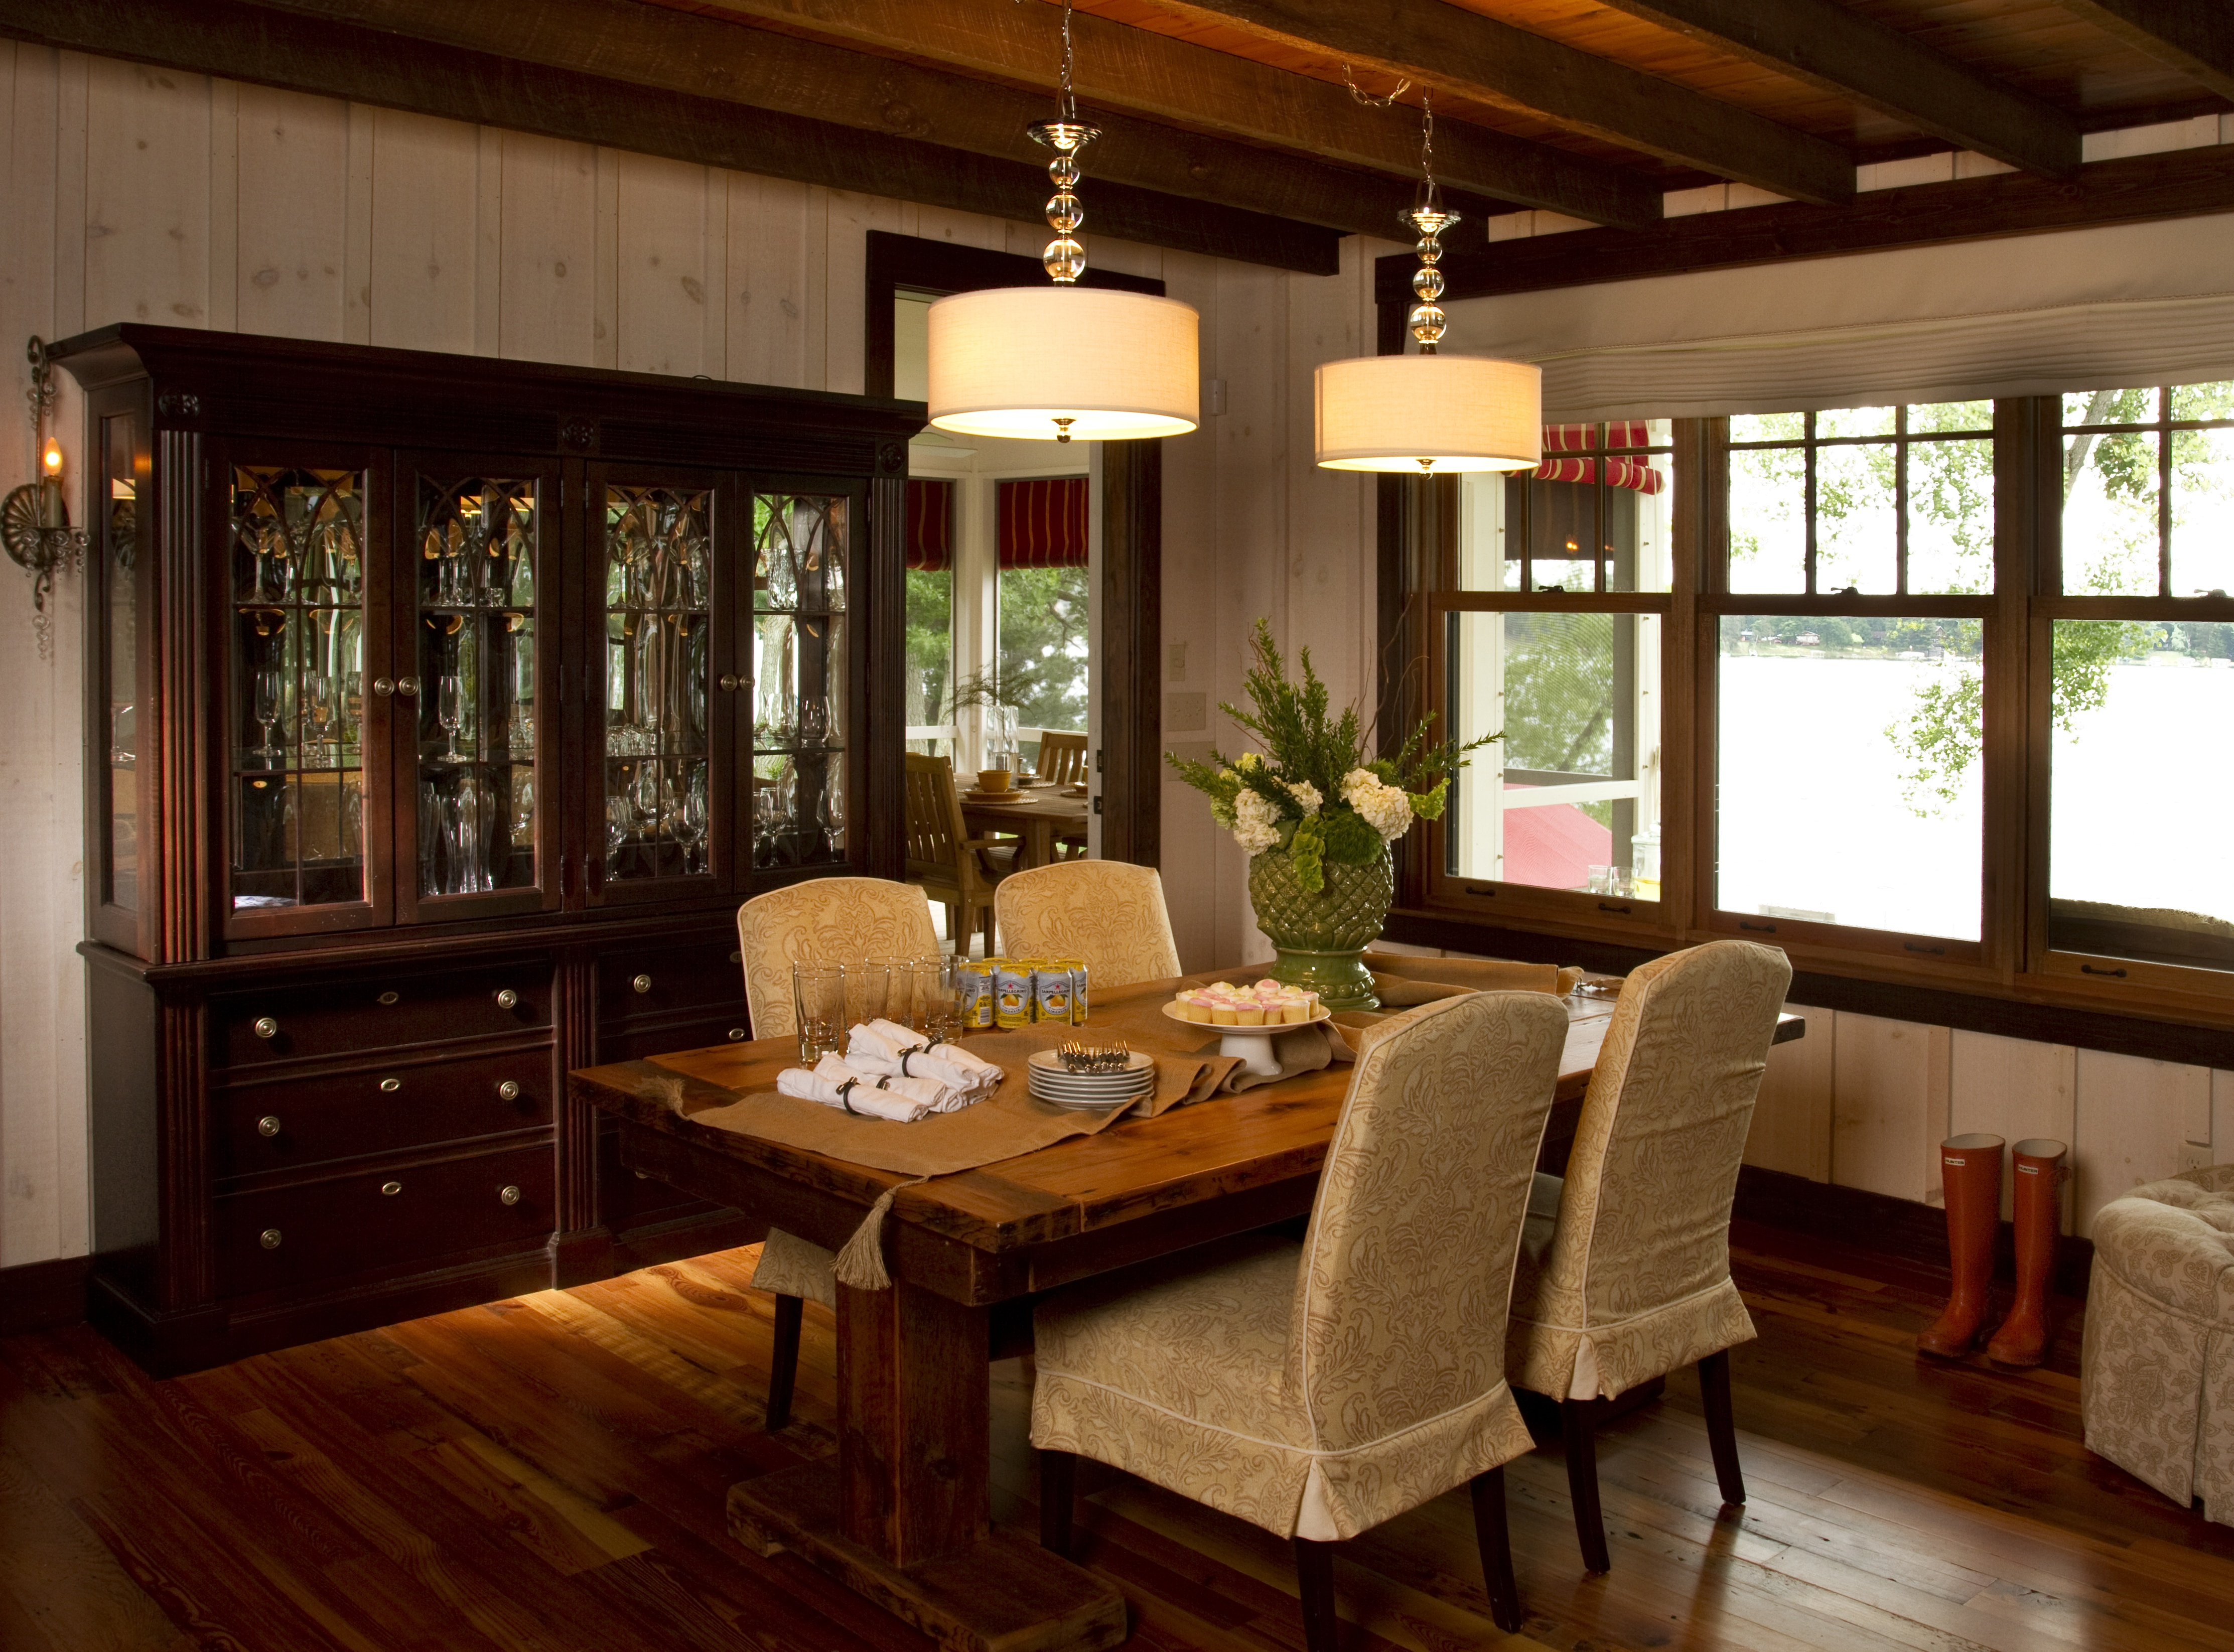 Classic Formal Dining Room With Hanging Pendant Lights (Image 6 of 20)